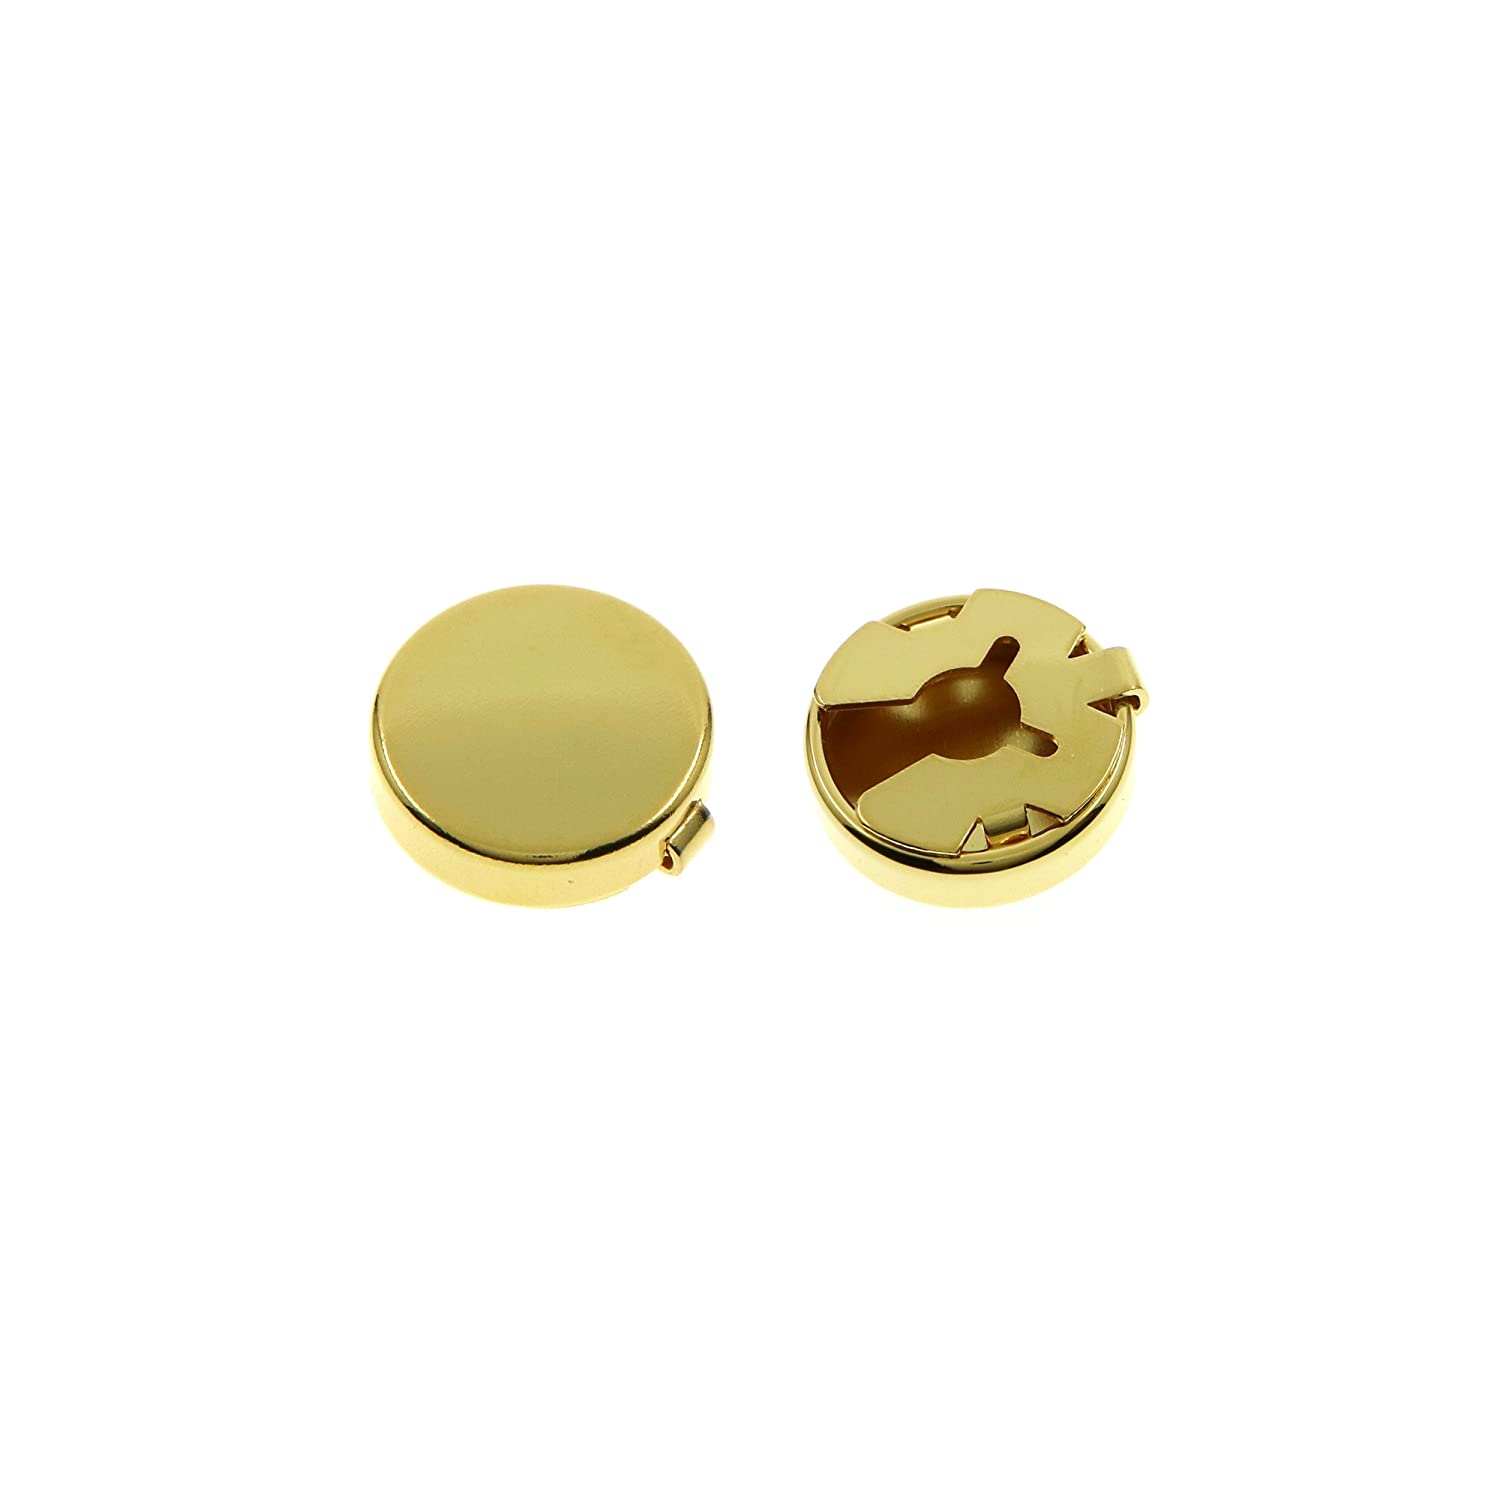 Ms.Iconic 15MM Rose Gold,Gold Round Cuff Button Cover Cuff Links for Wedding Formal Shirt 2Pcs/Set Shine Idea